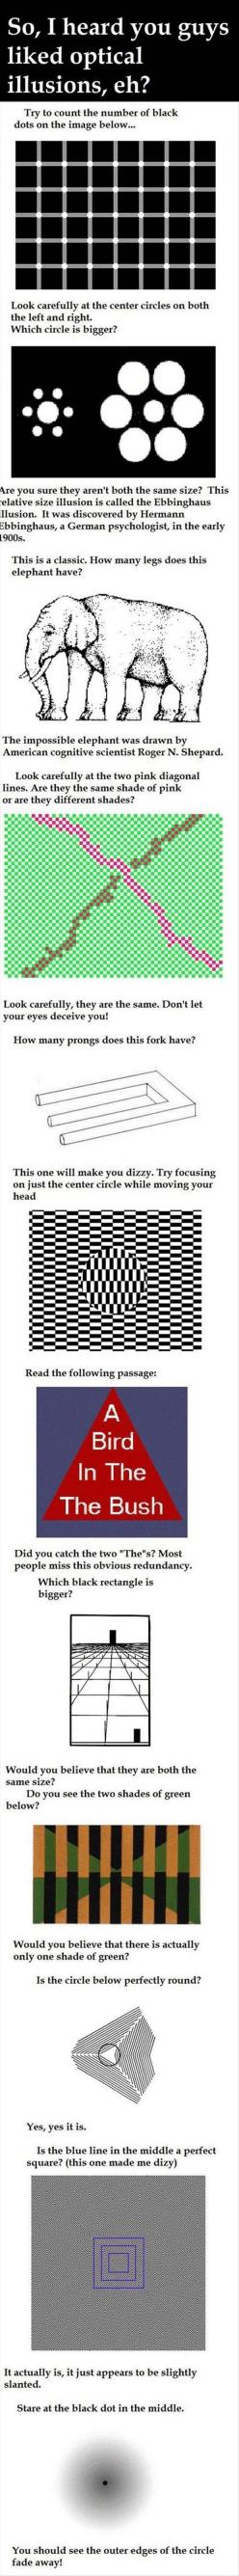 Optical illusions: Head Hurt, Optical Illusions These, Stuff, Crazy, Awesome, Elephant, Brain Hurt